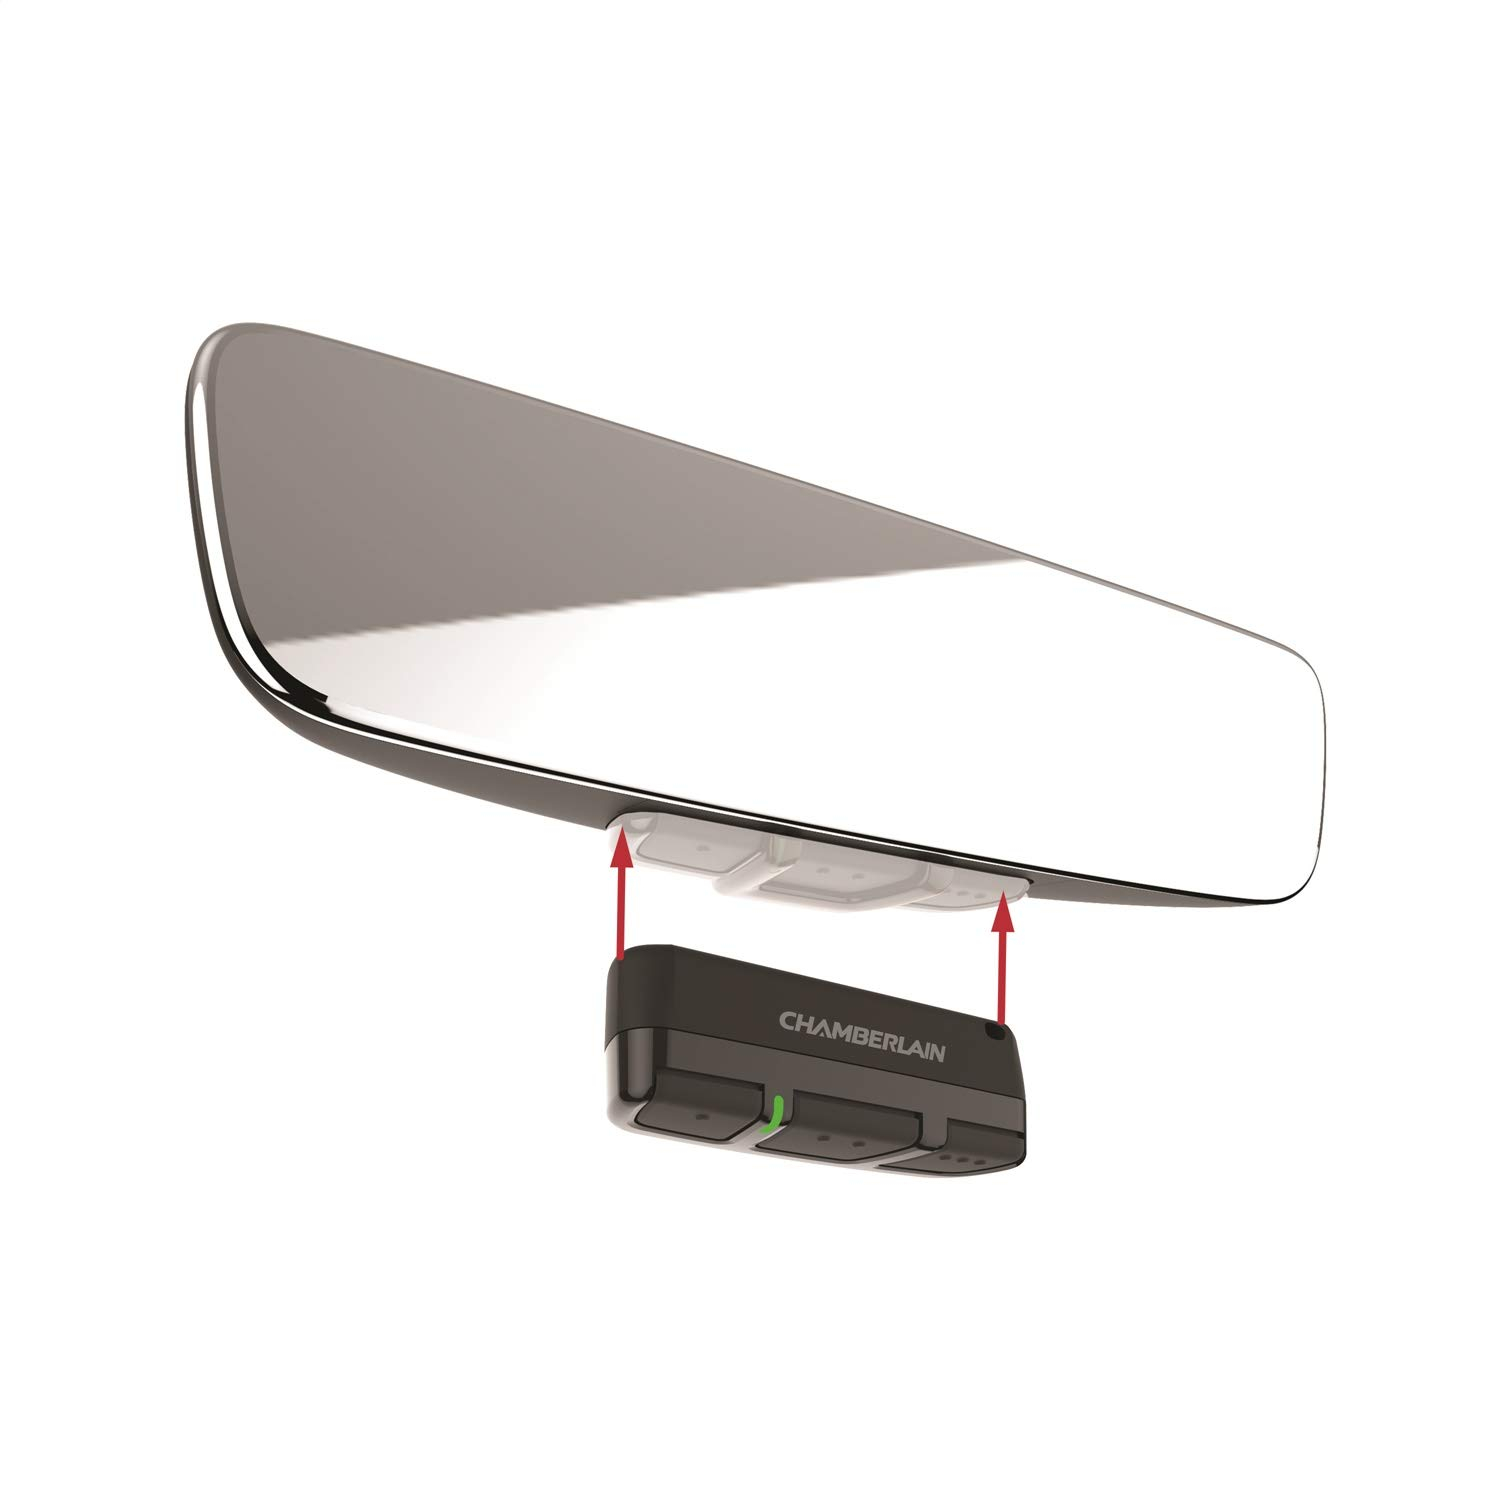 Brandmotion 1110-2520 Frameless Manual Dim Rear View Mirror with Universal Remote Control